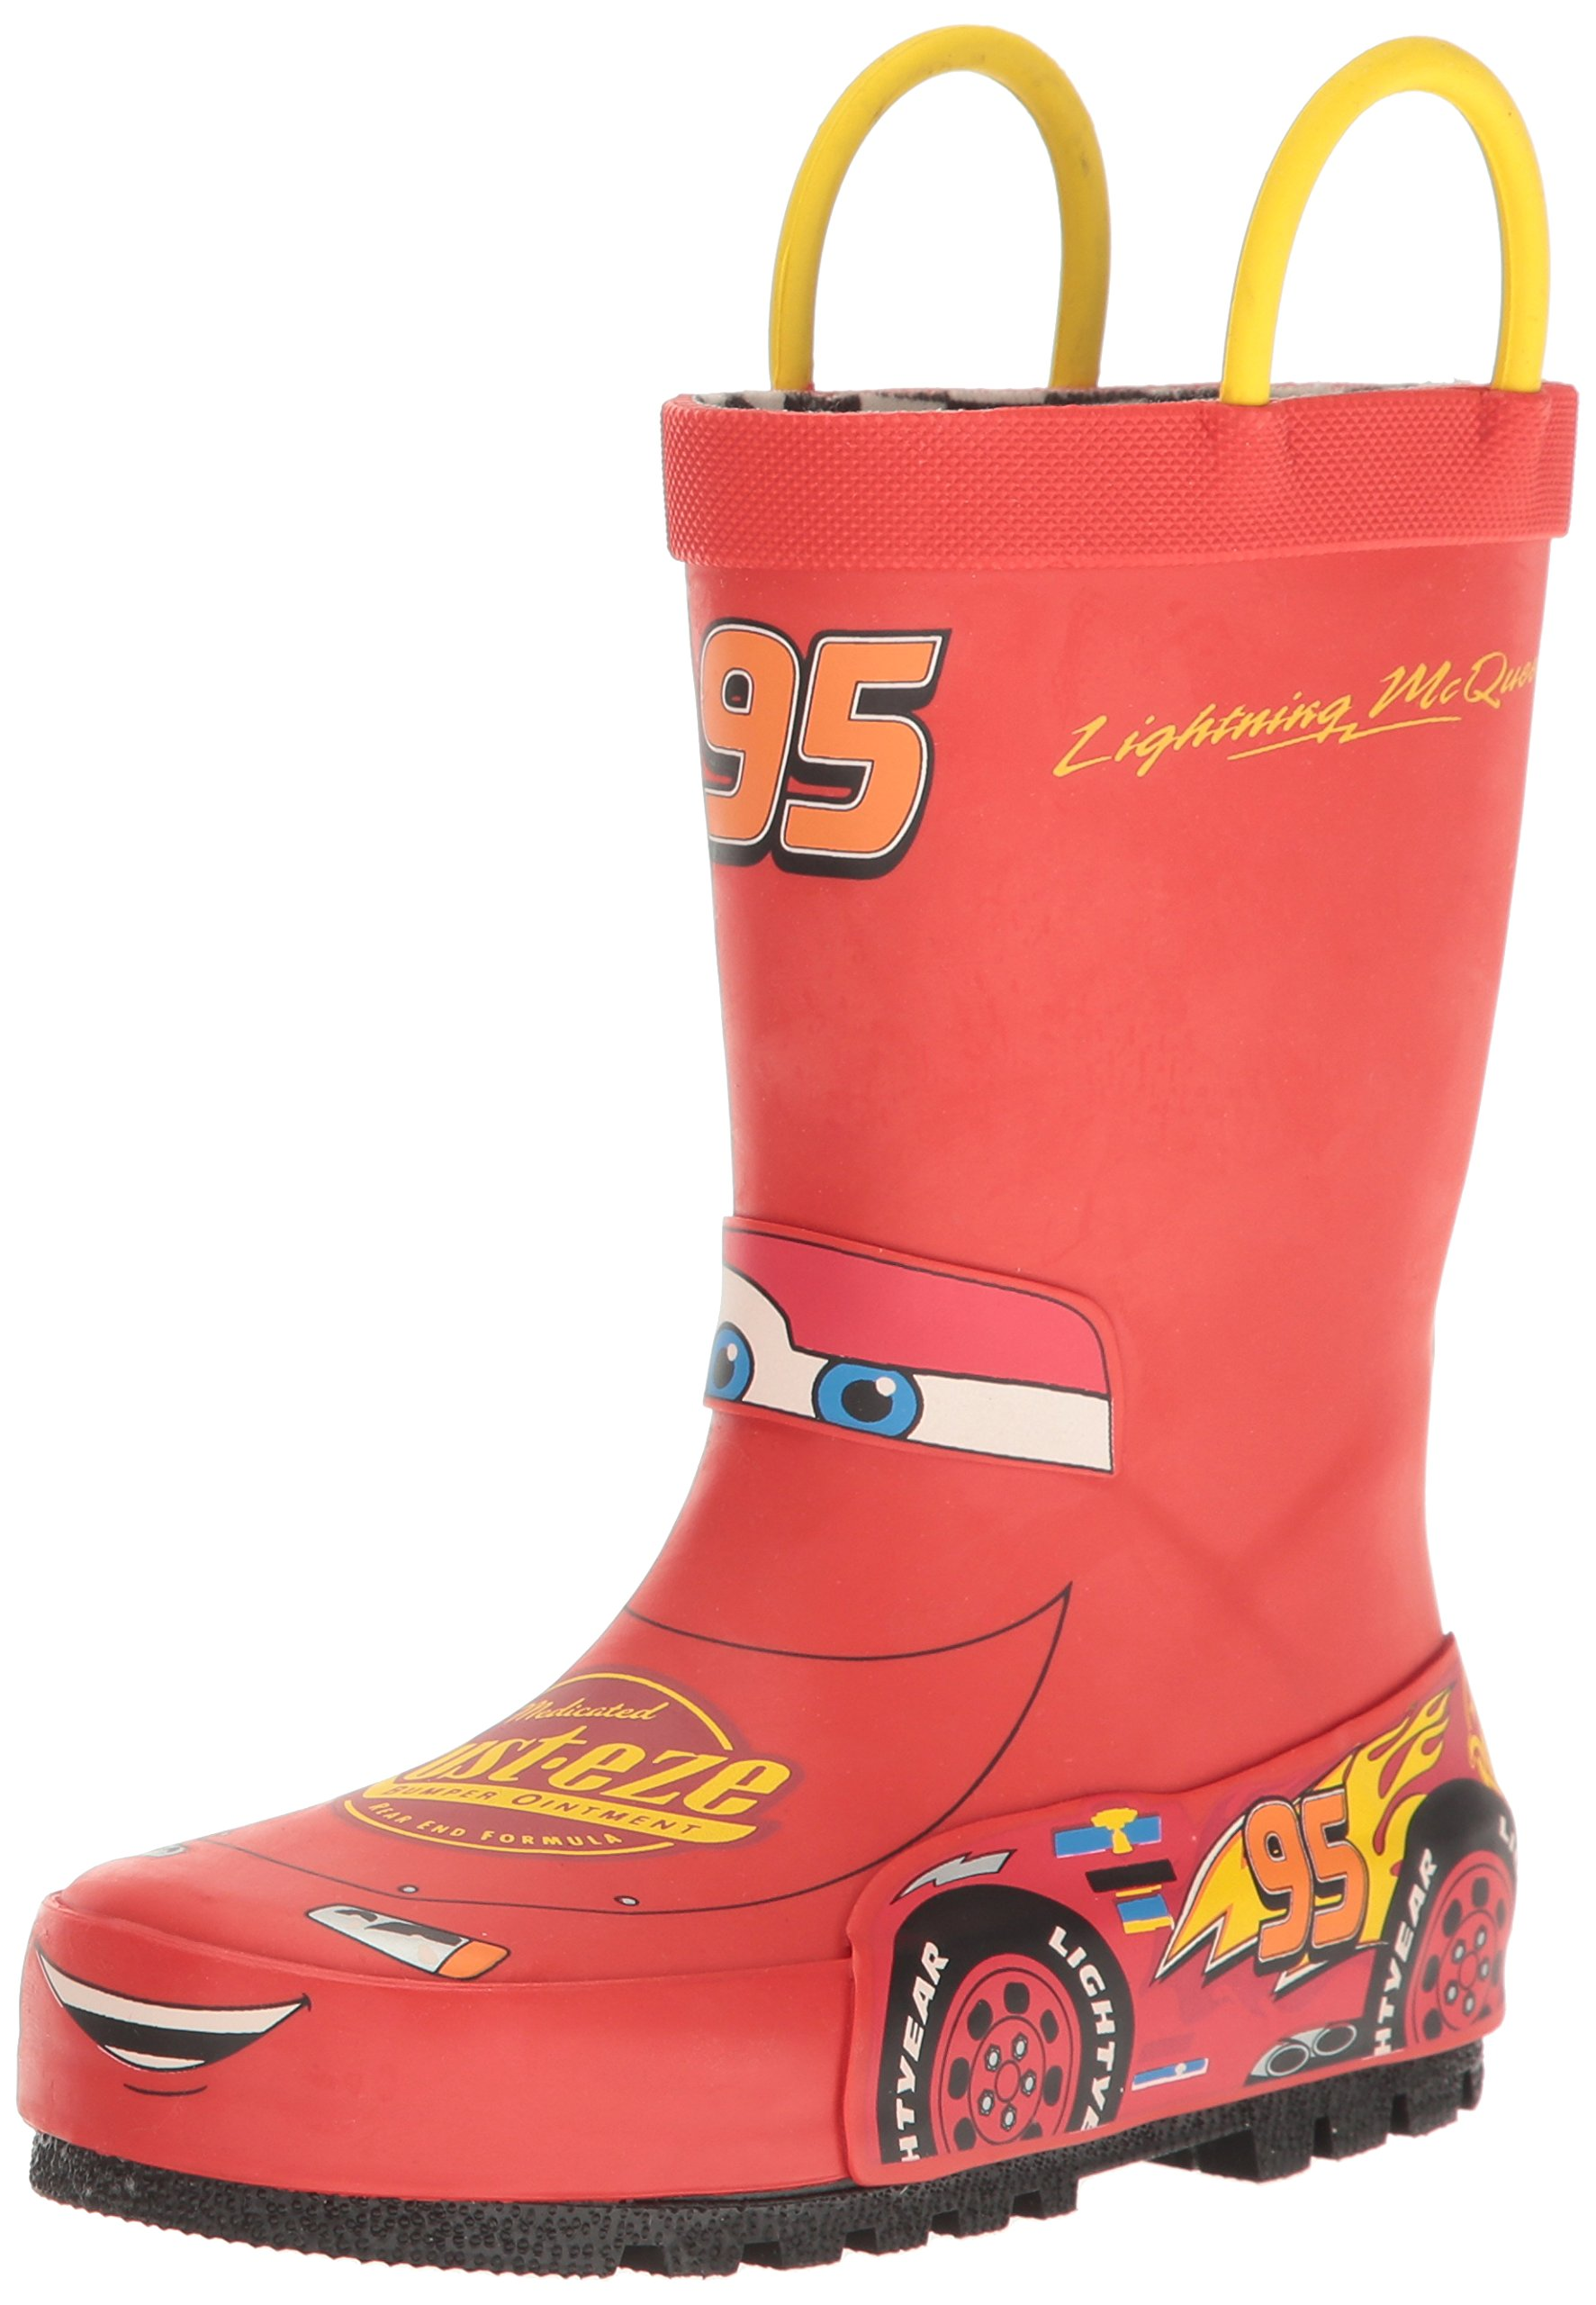 Western Chief Kids Waterproof Disney Character Rain Boots with Easy on Handles, Lightning McQueen, 11 M US Little Kid